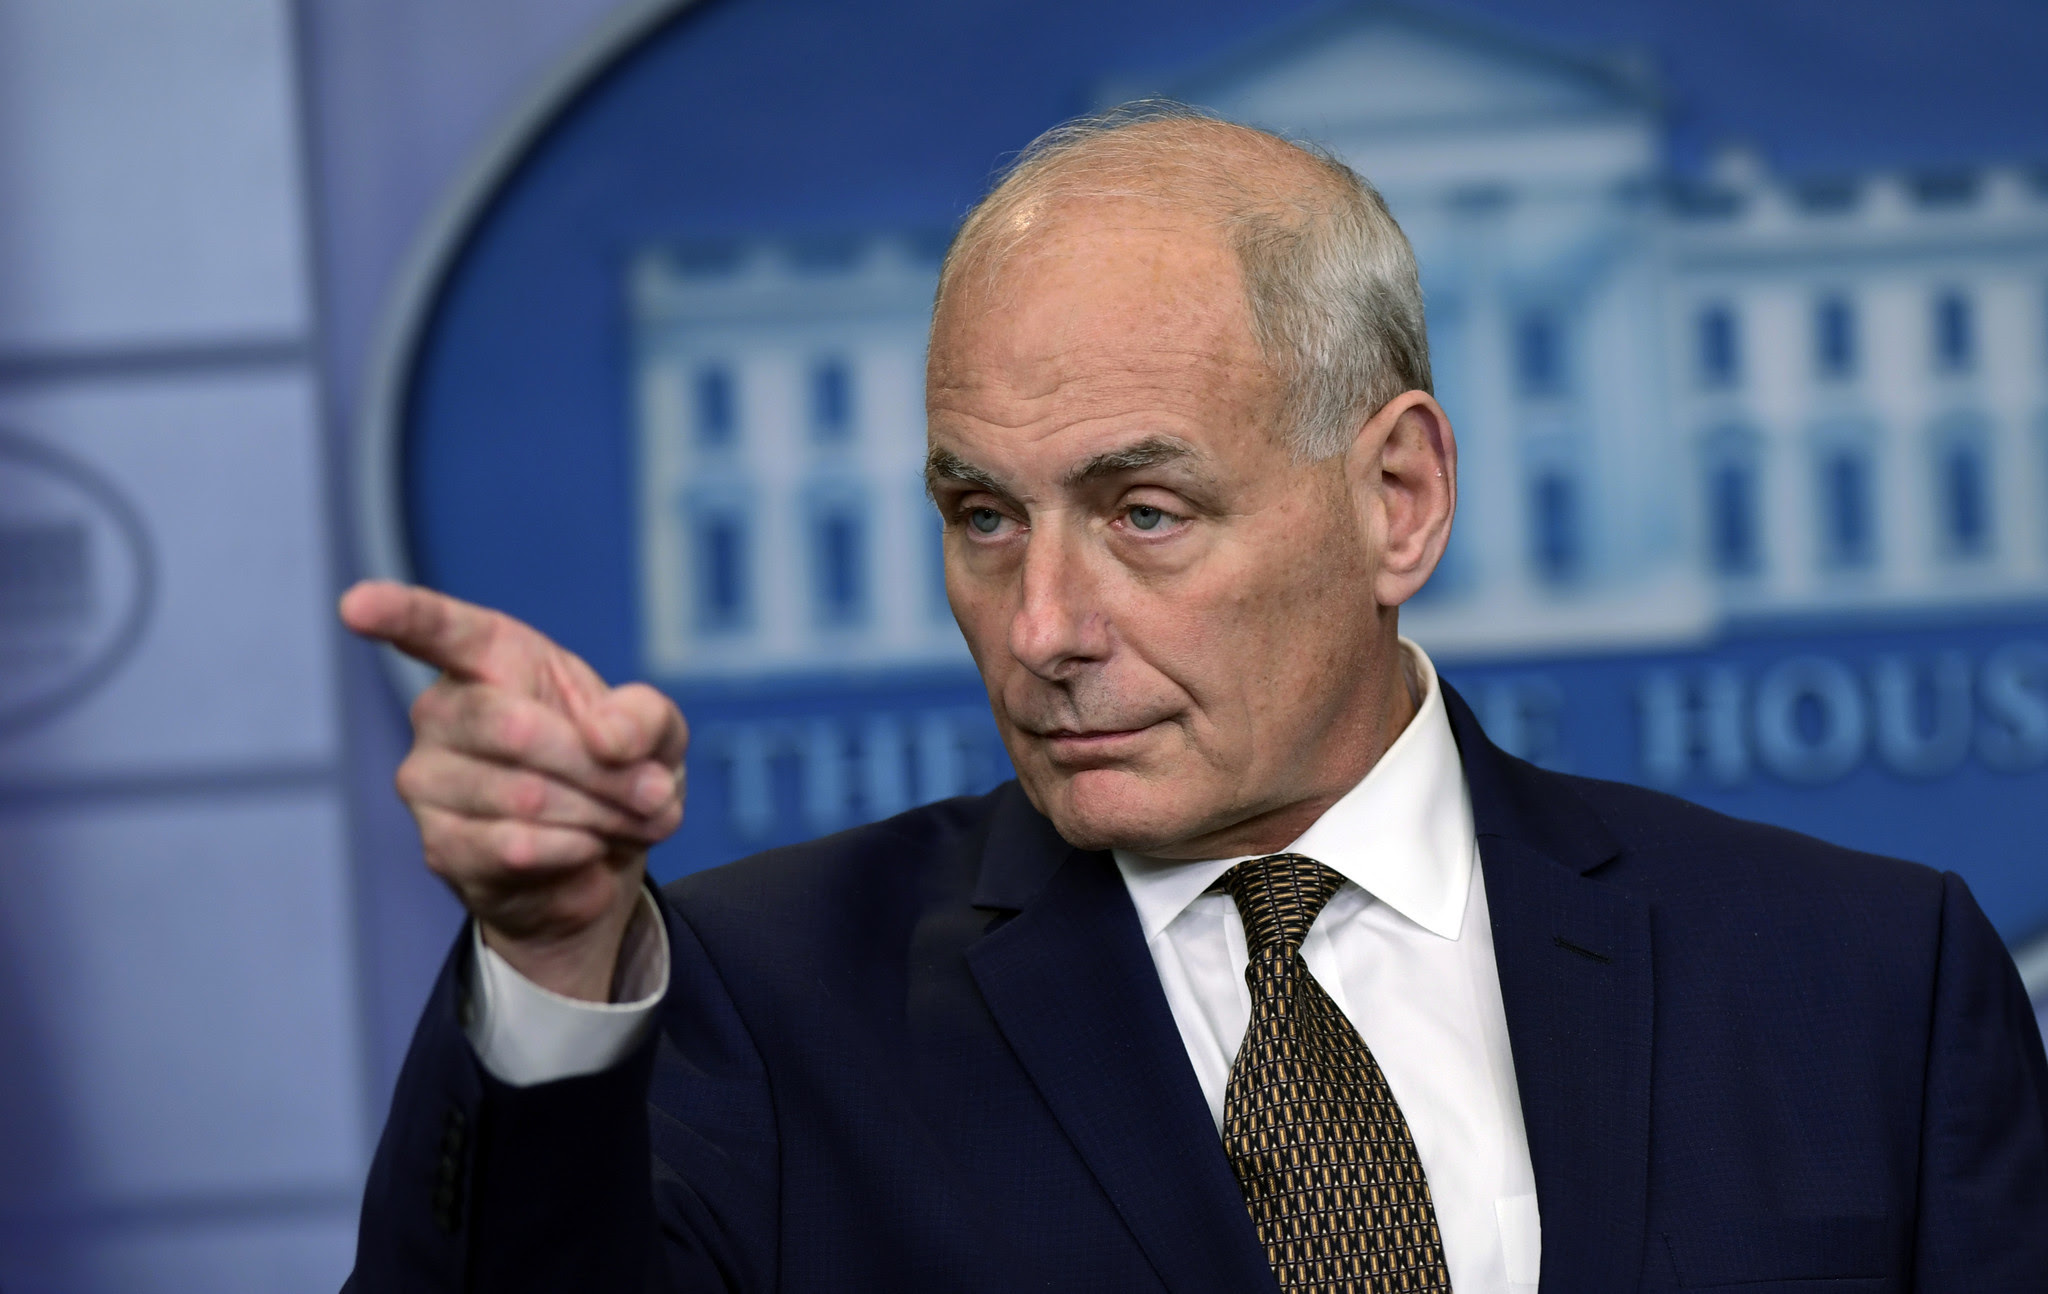 http://www.trbimg.com/img-59f85caa/turbine/ct-john-kelly-compromise-caused-civil-war-20171031